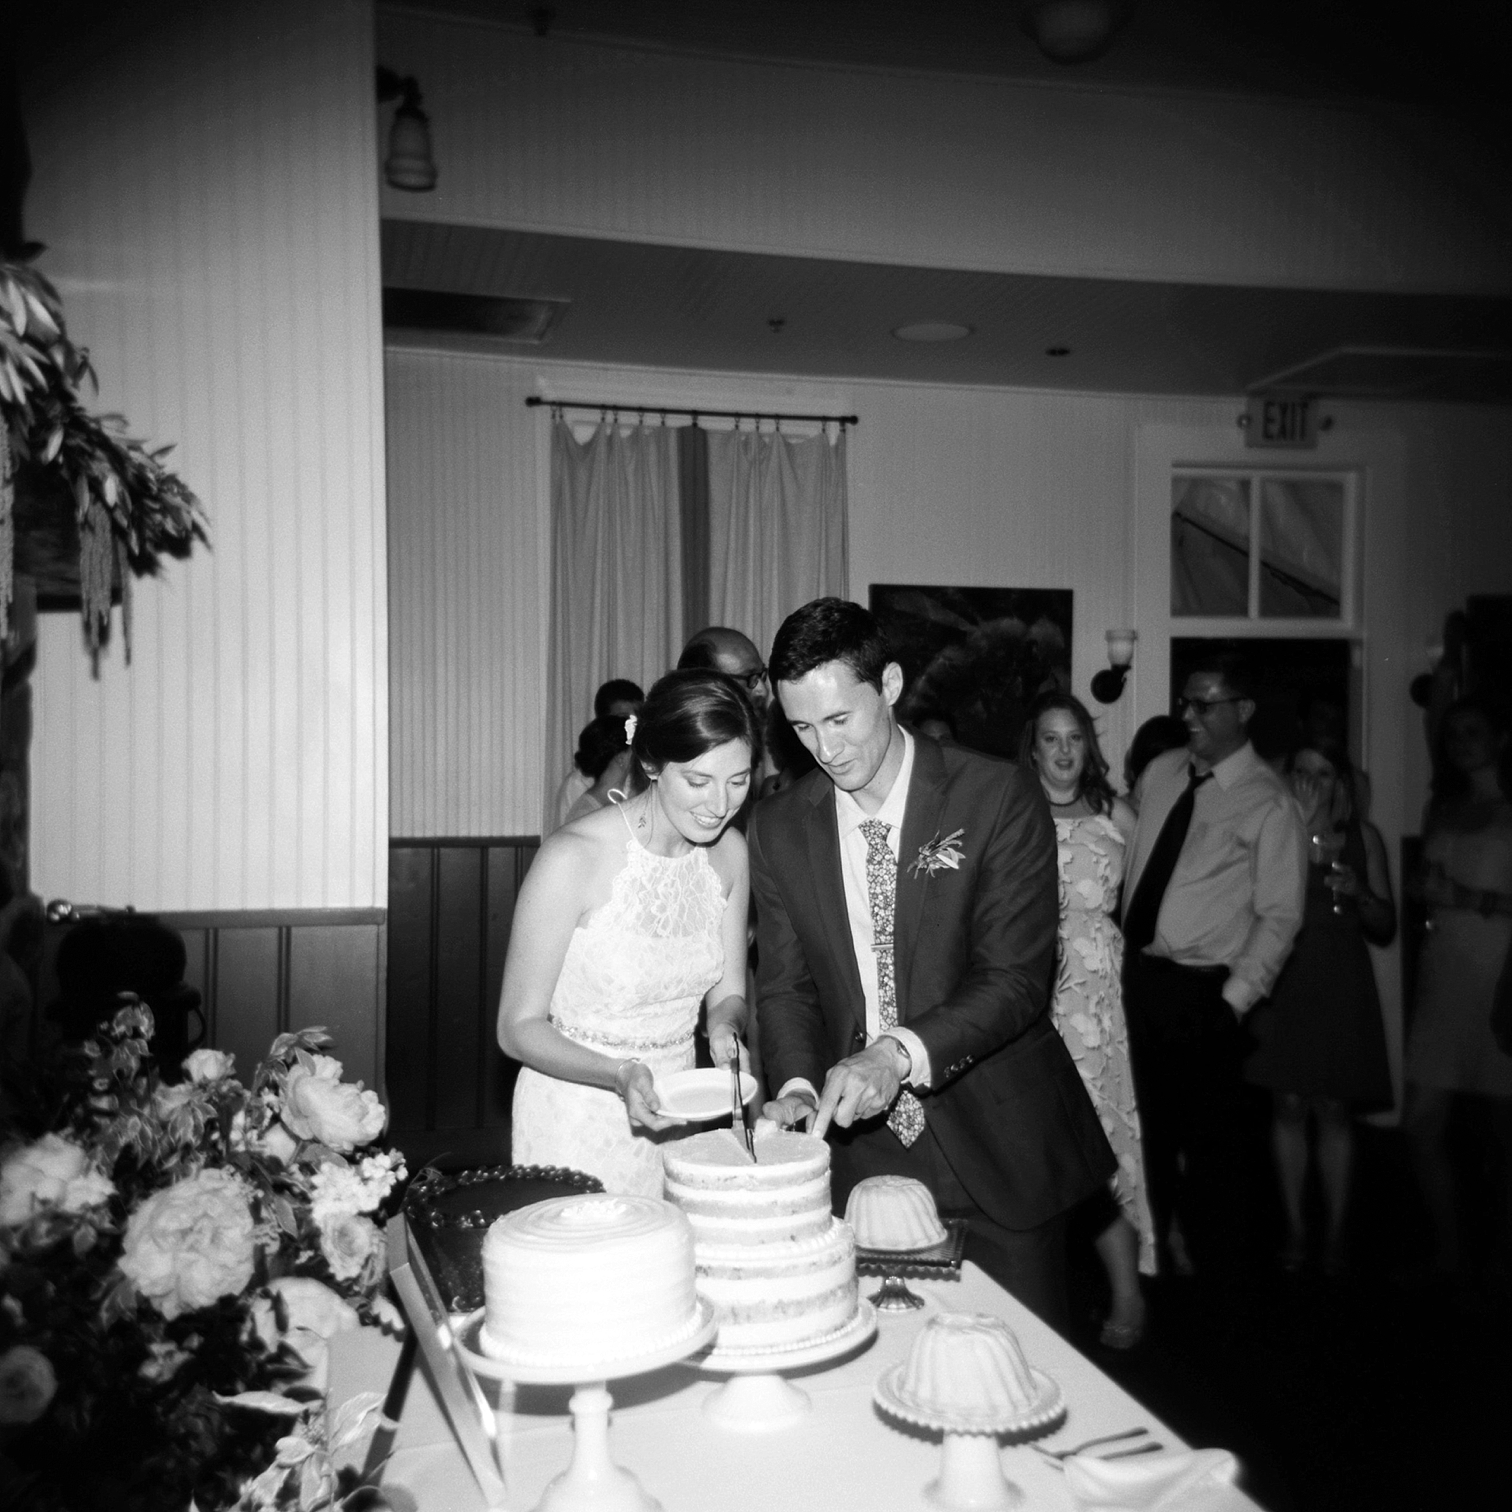 Chautauqua Dining Hall Wedding, Holga Wedding Photos, Outdoor Wedding Details, Colorado Mountain Weddings, Danielle DeFiore Photographer, Destination Wedding Photographers, Weddings in Boulder Colorado, Outdoor Ceremony, Film Photographer, Summer Weddings, Bride And Groom Cutting Cake